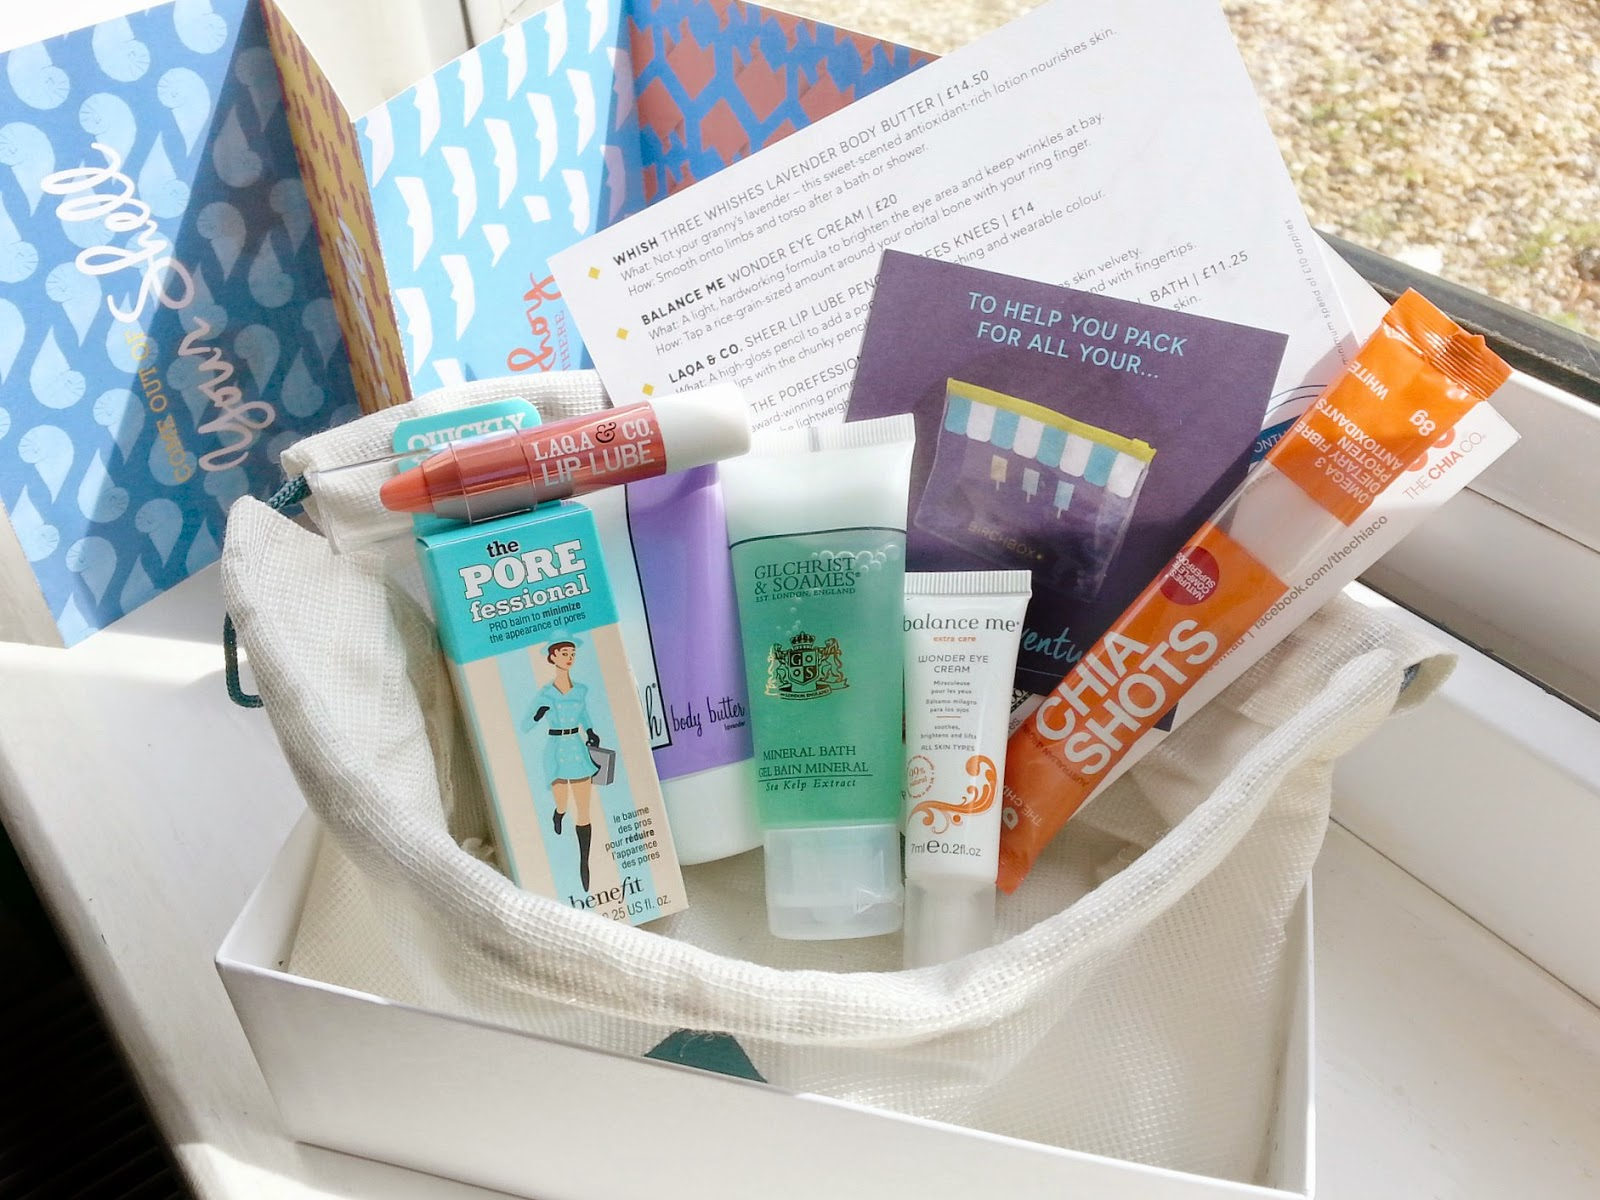 birchbox uk, Birchbox uk July 2014, Birchbox beauty subscription box